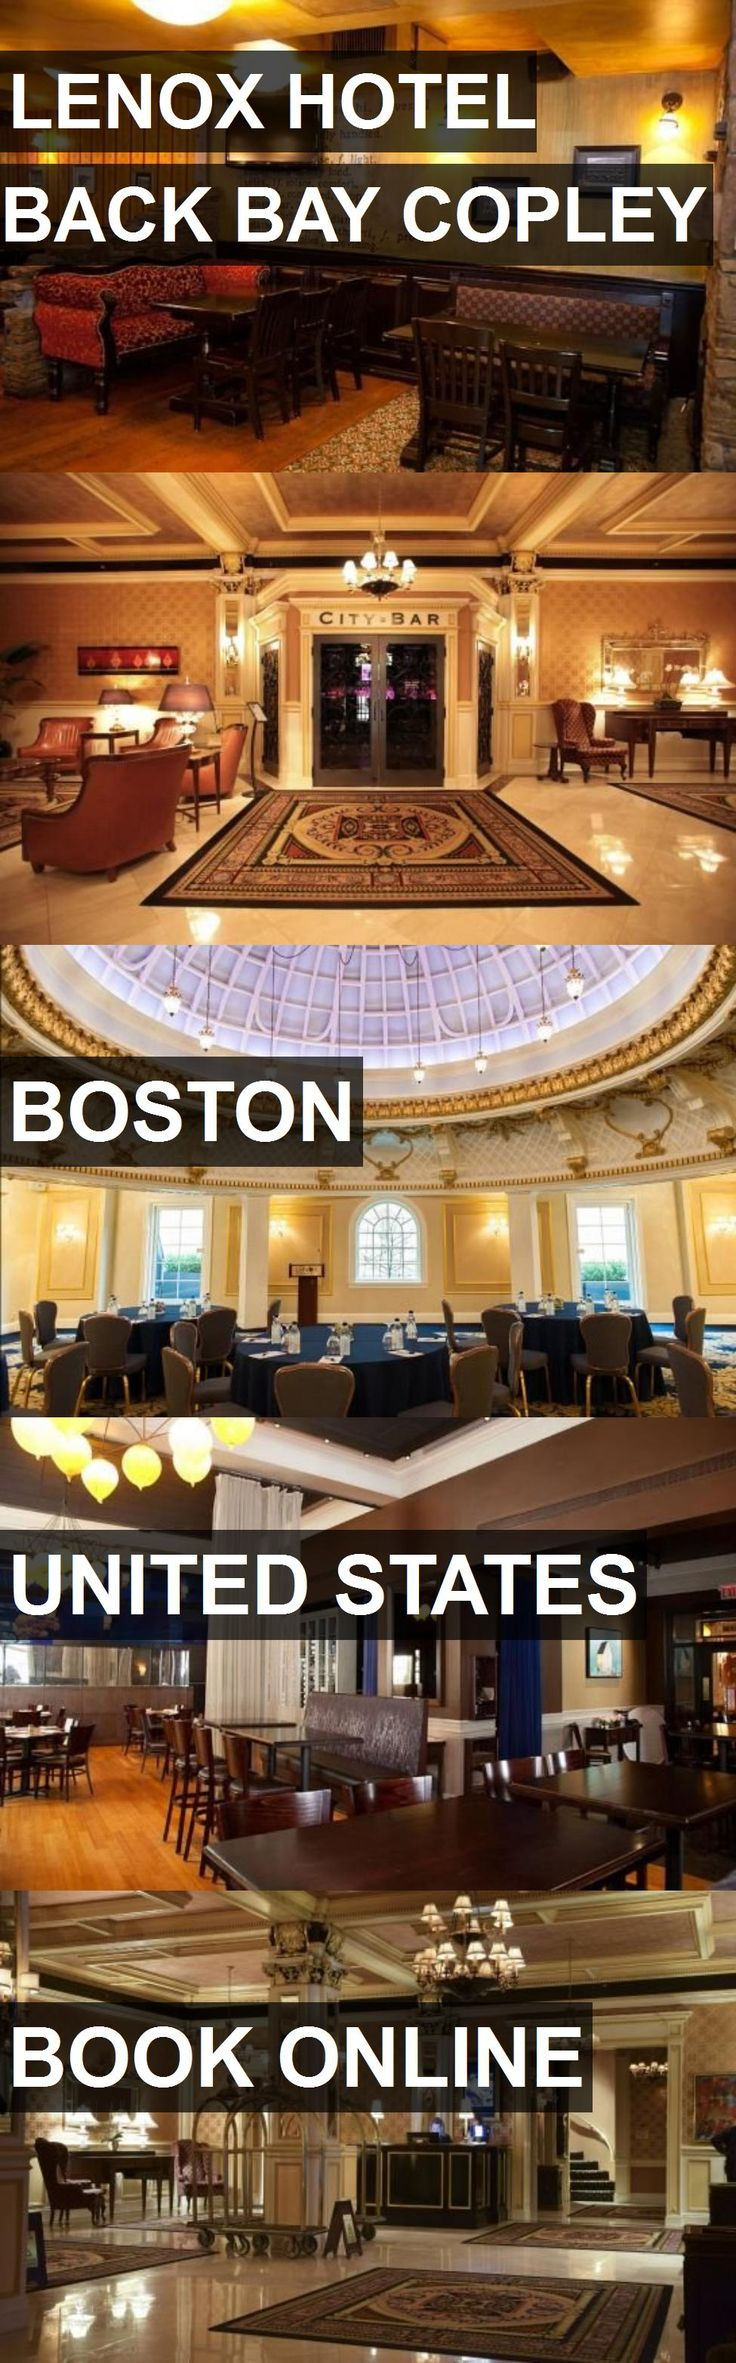 Hotel LENOX HOTEL BACK BAY COPLEY in Boston, United States. For more information, photos, reviews and best prices please follow the link. #UnitedStates #Boston #LENOXHOTELBACKBAYCOPLEY #hotel #travel #vacation